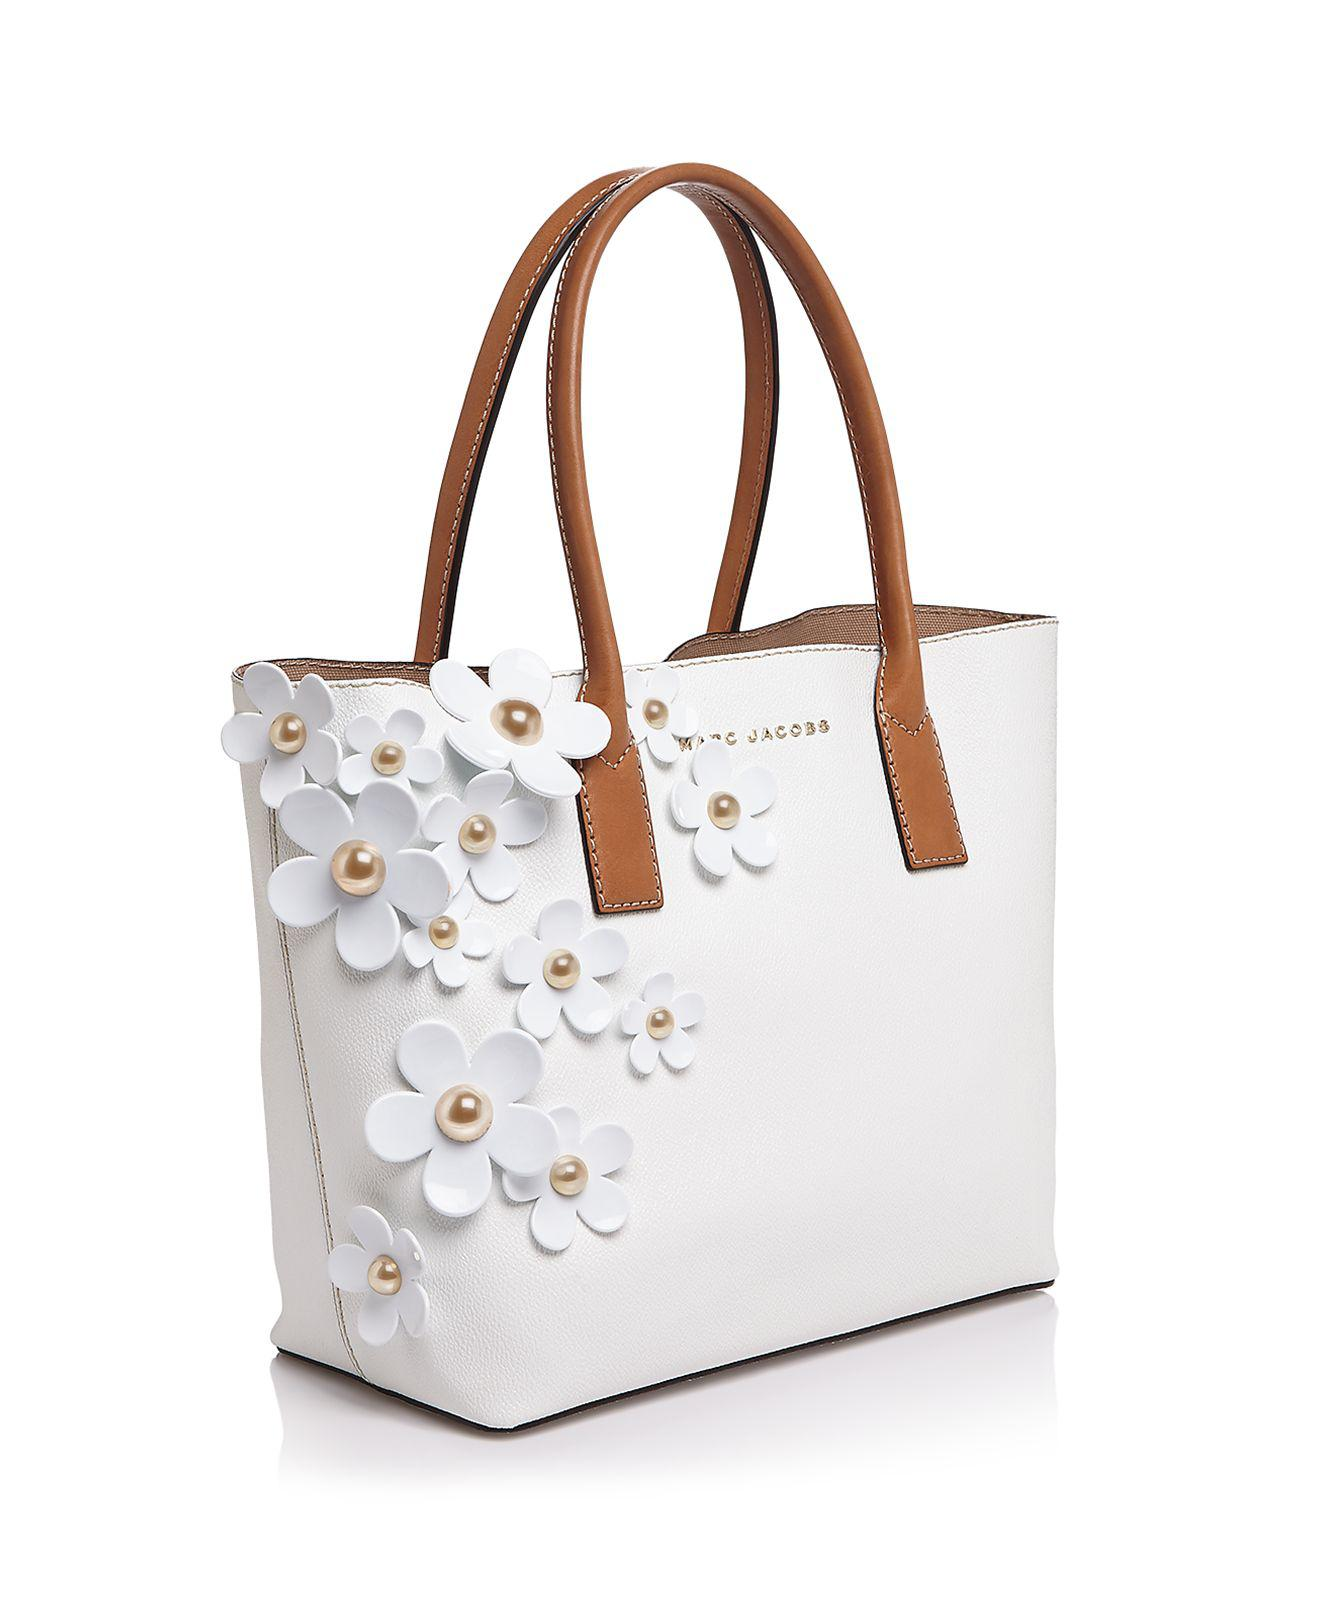 0d9edaab7728 Lyst - Marc Jacobs The Daisy Tote in White